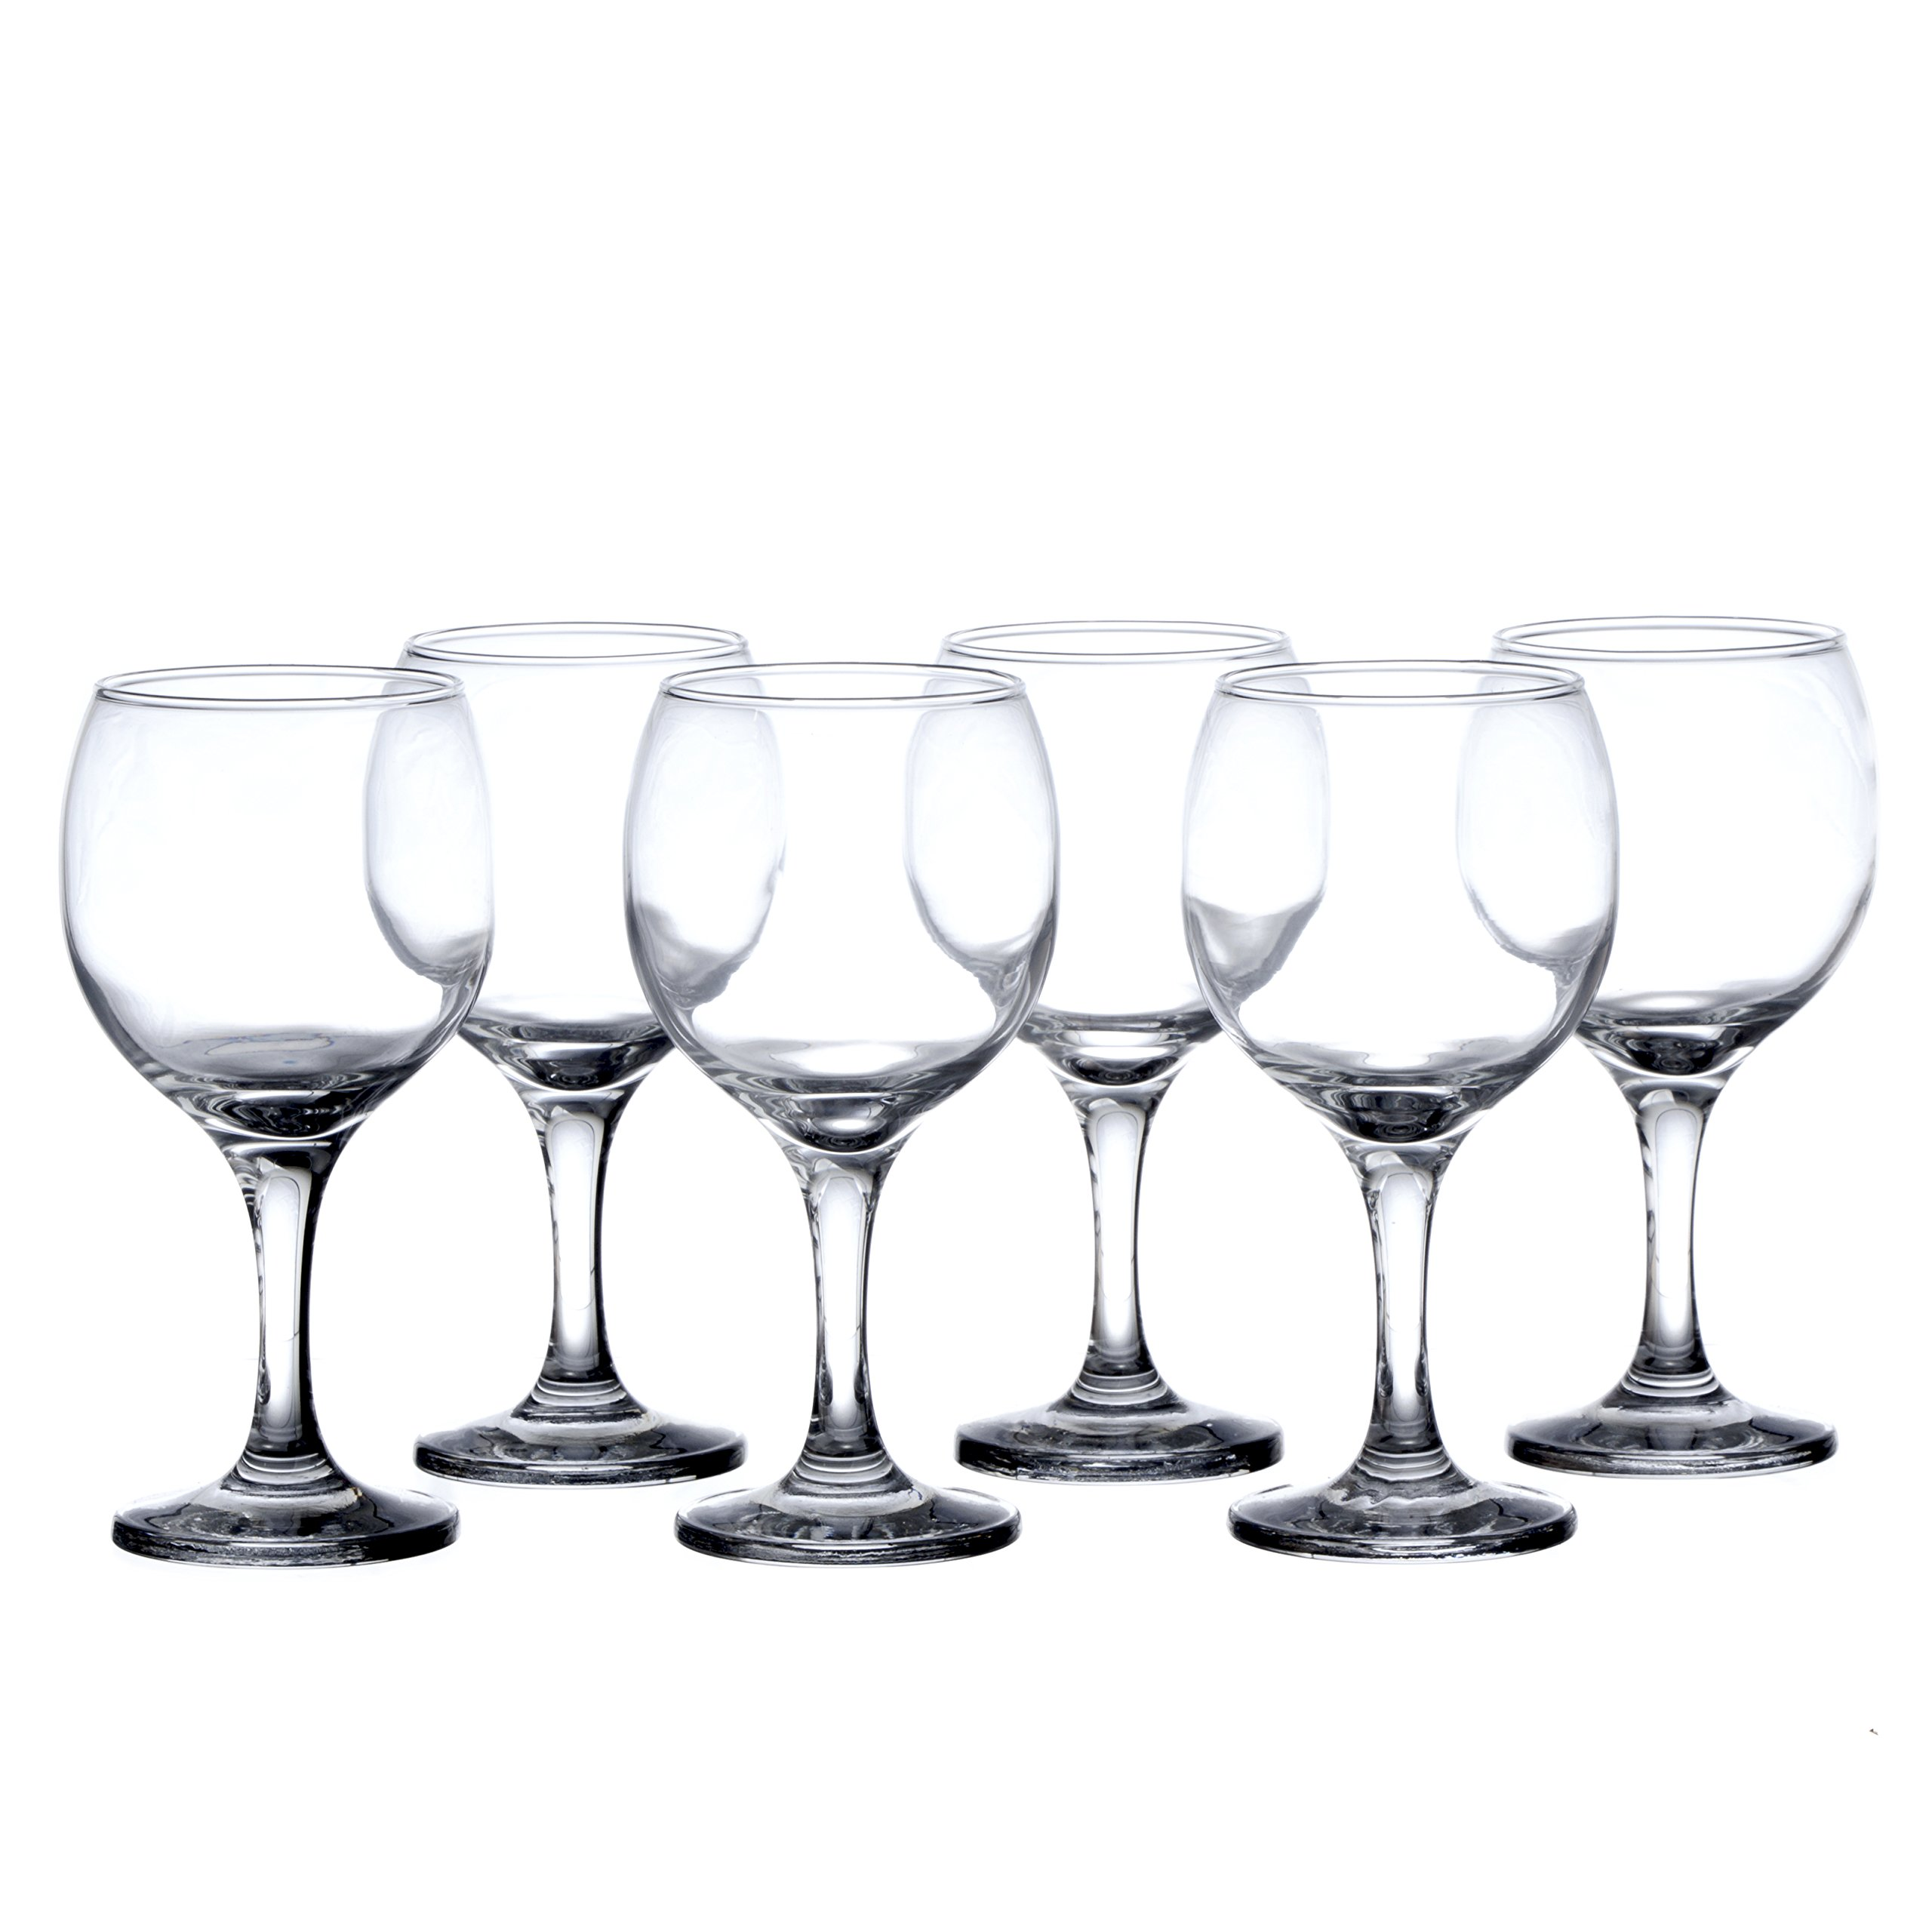 BISTRO 12-piece Wine Glasses Set (in 3 size), White, Red and Liquor Wine, Restaurant&Bar Quality, Durable Tempered Glass, Heavy Base, t.m. Pasabache (7 1/2 oz) by Pasabache (Image #4)